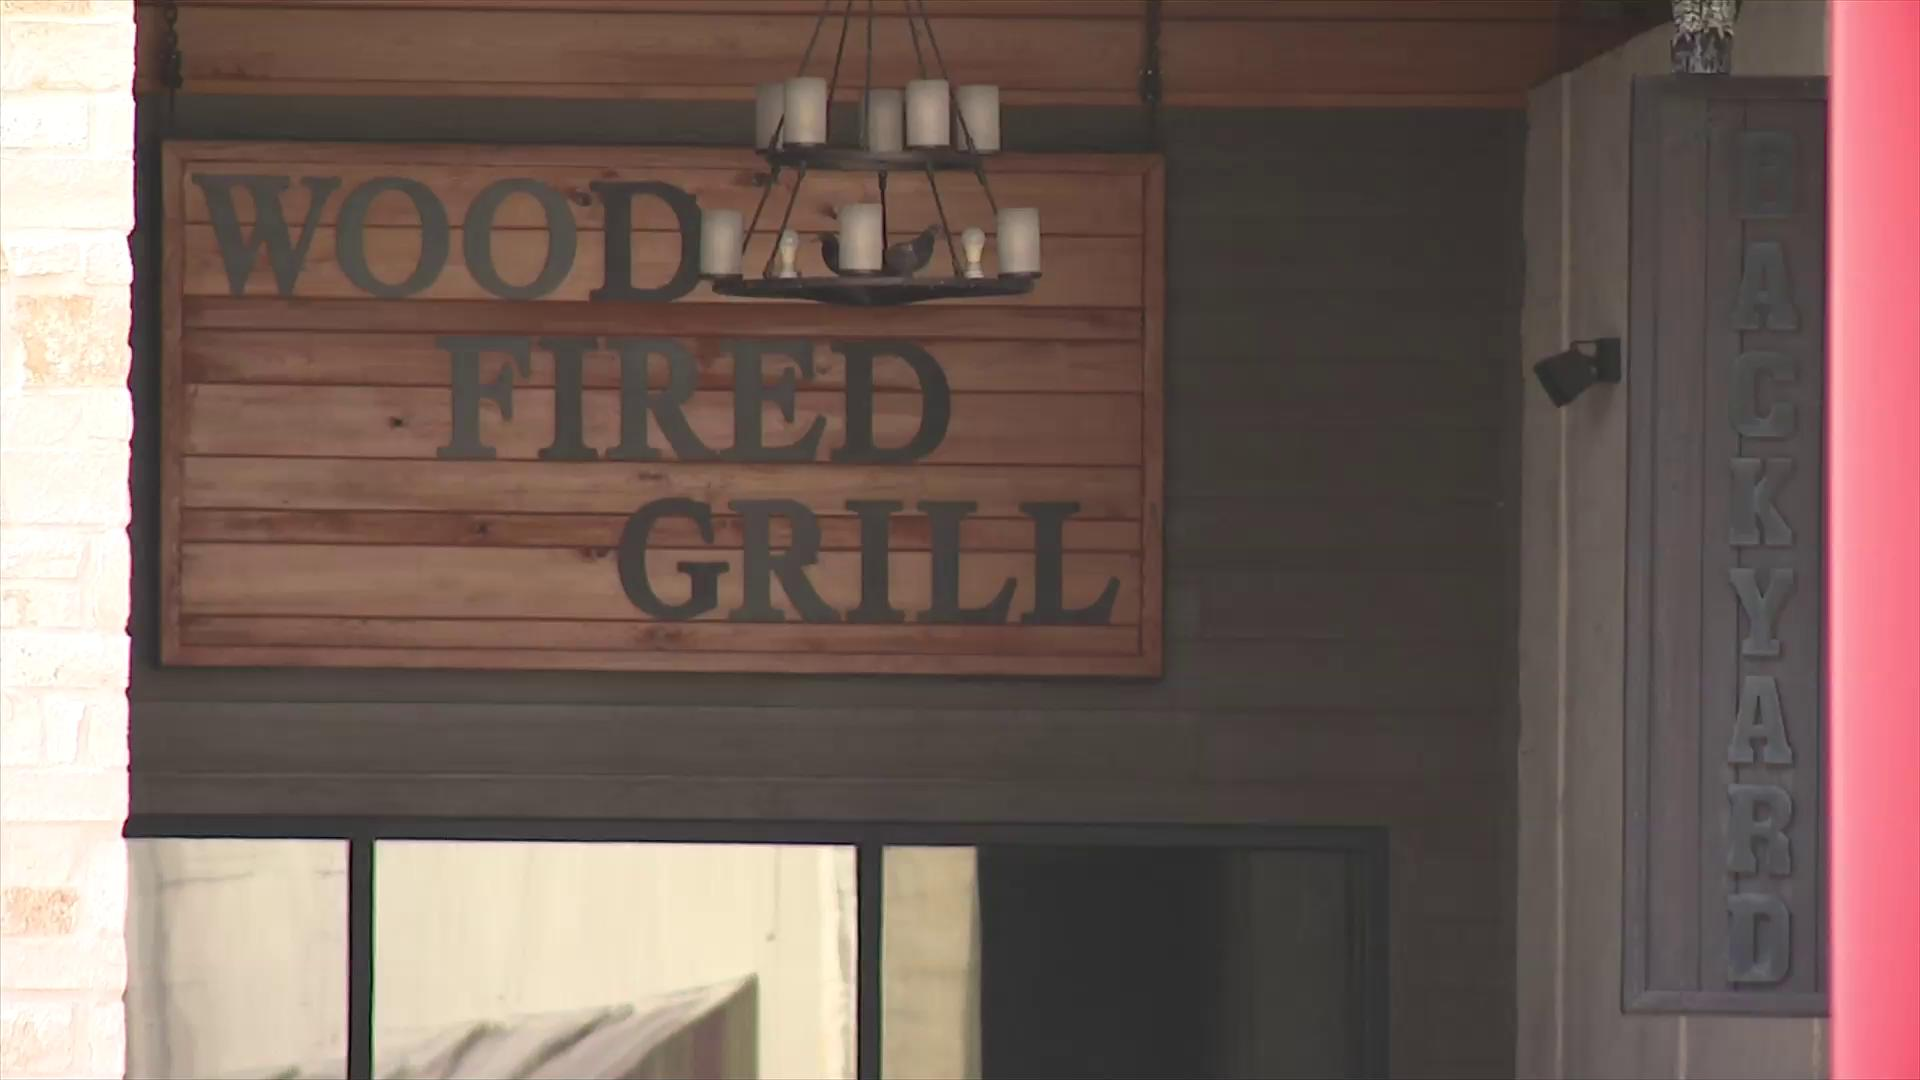 Wood Fired Grill and Backyard Dance Hall closing Saturday